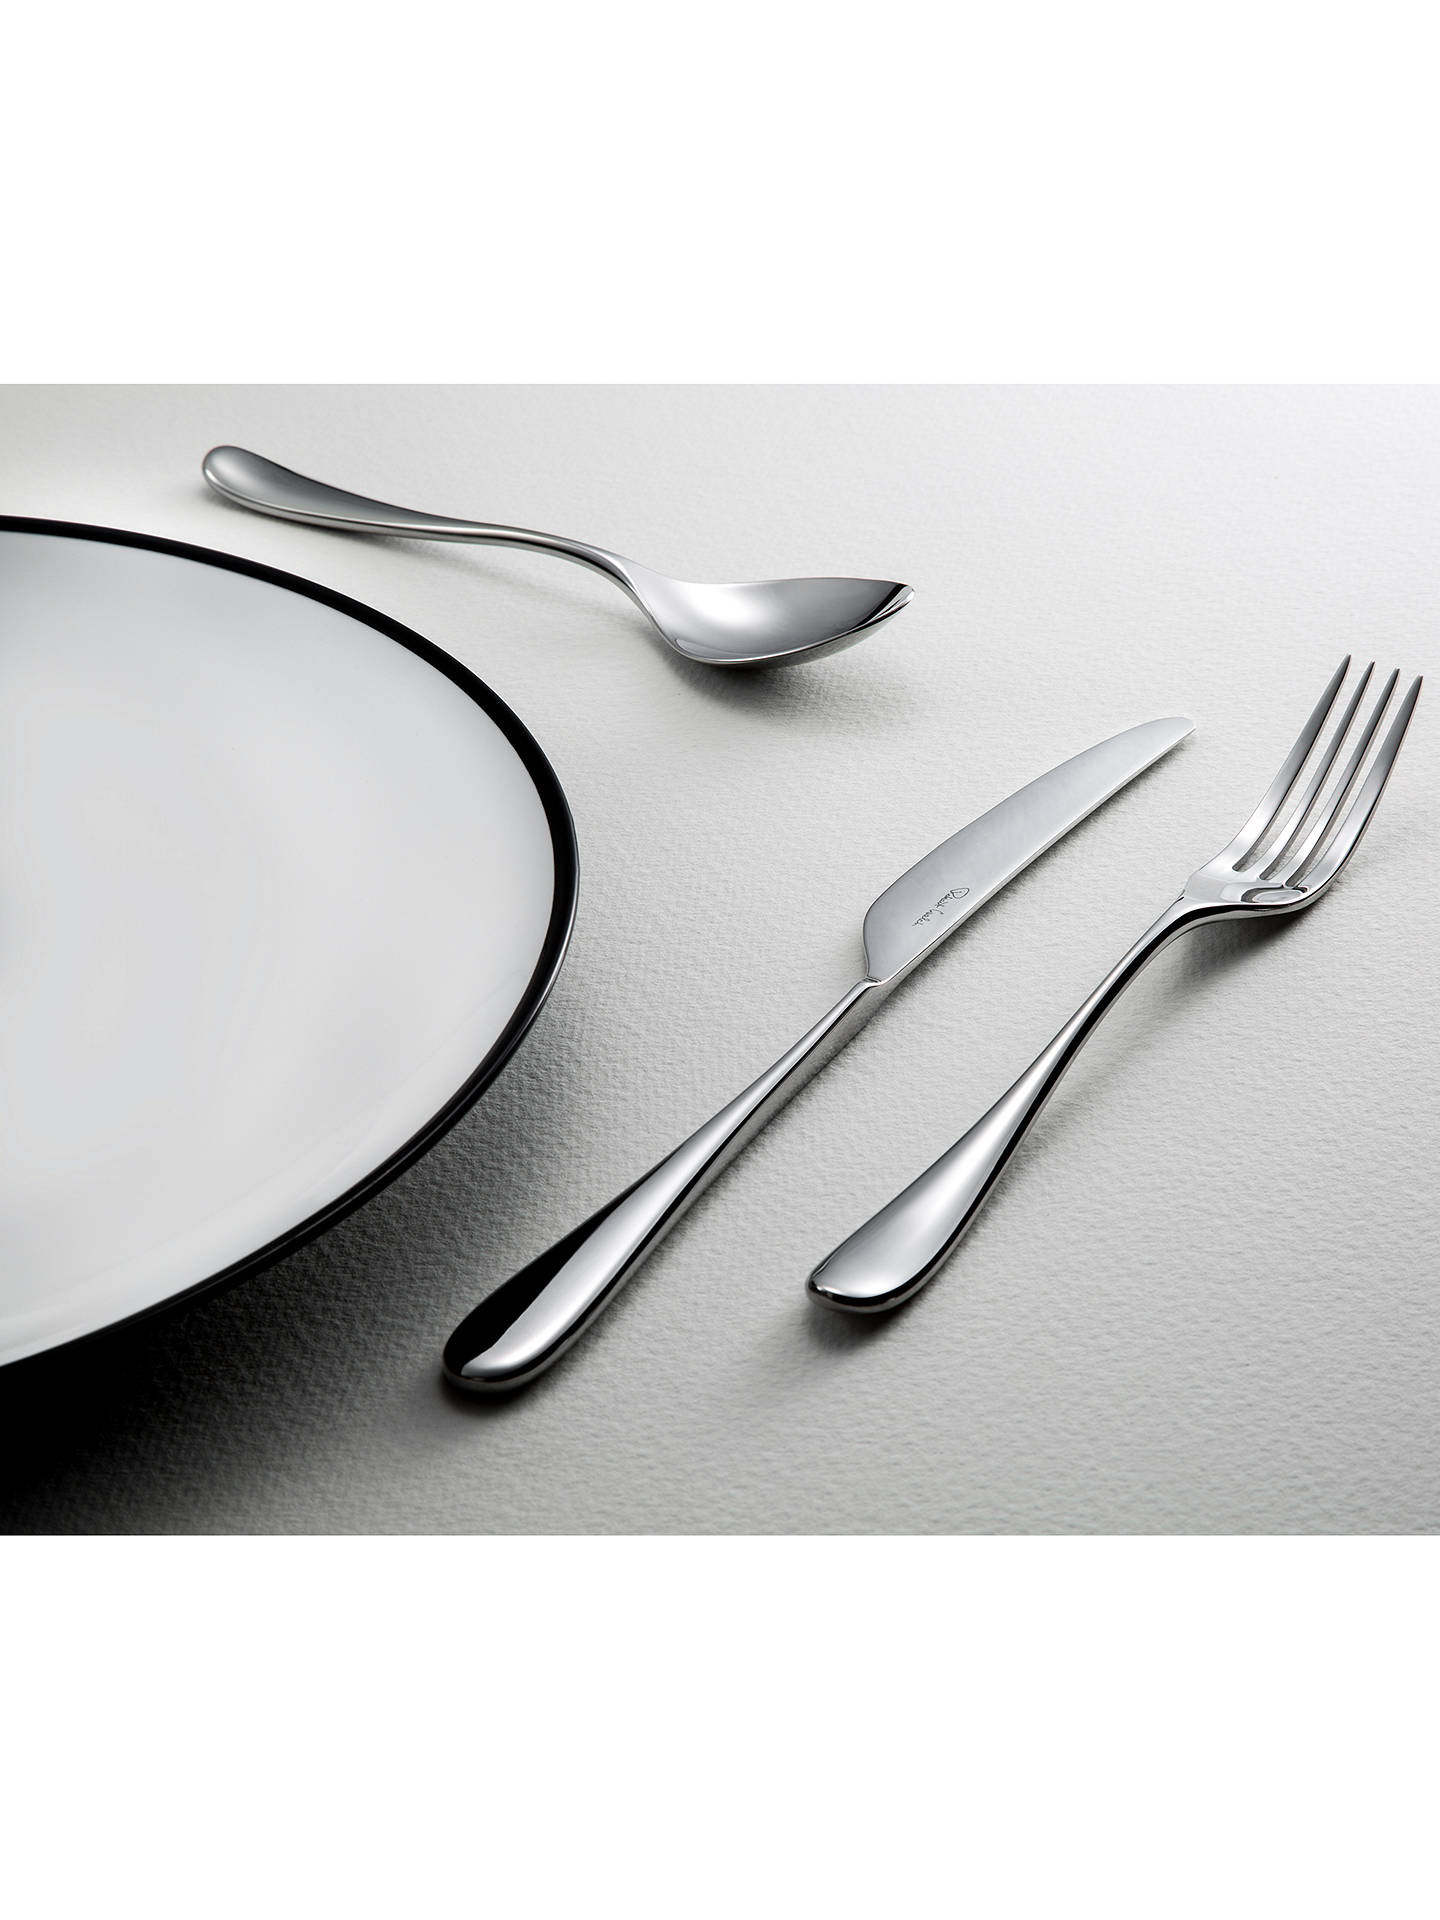 BuyRobert Welch Arden Bright Table Fork Online at johnlewis.com